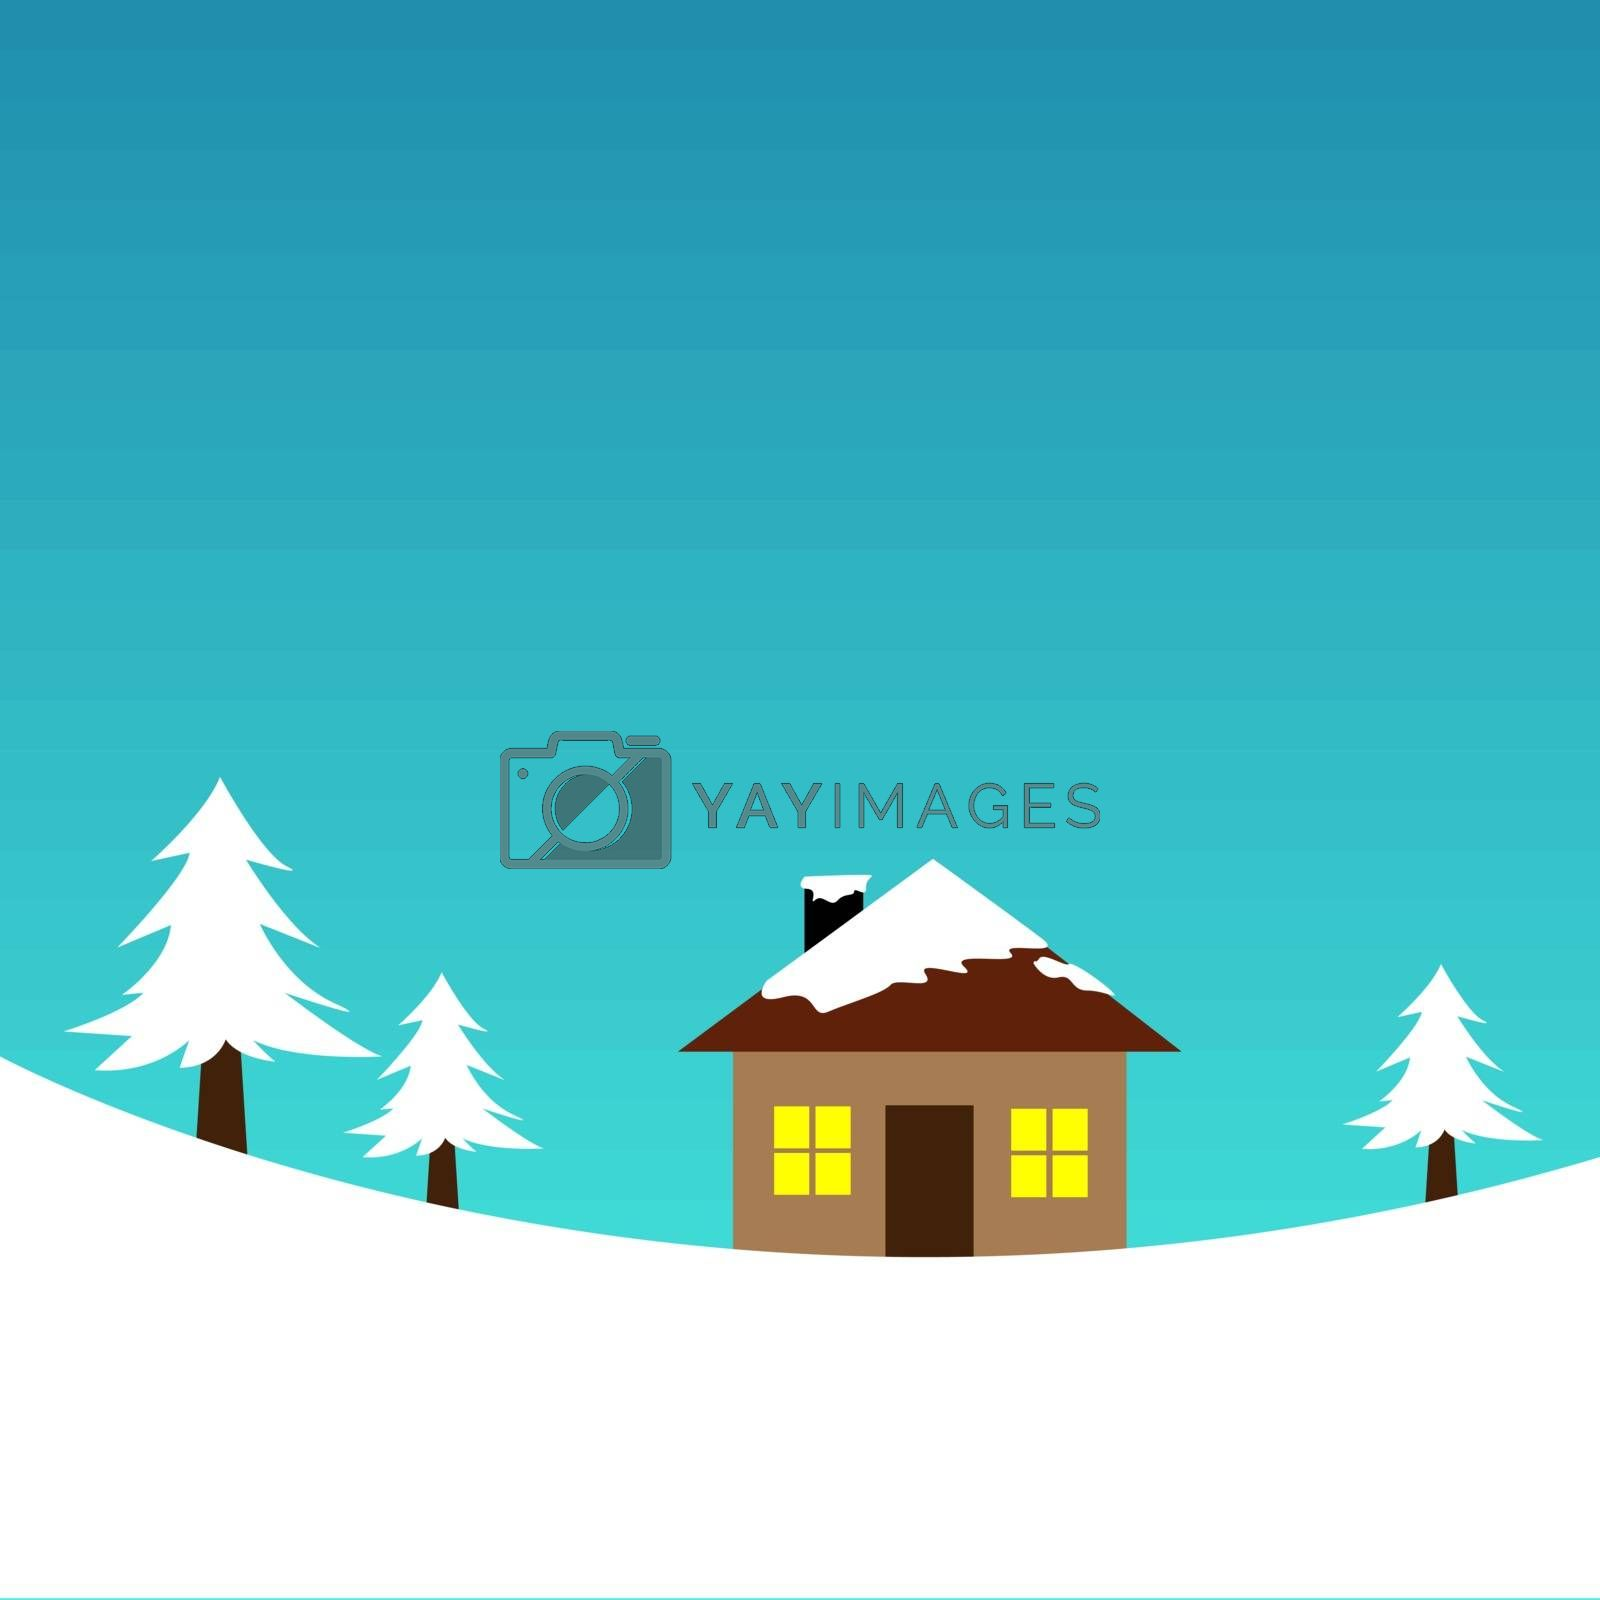 vector illustration of a little house